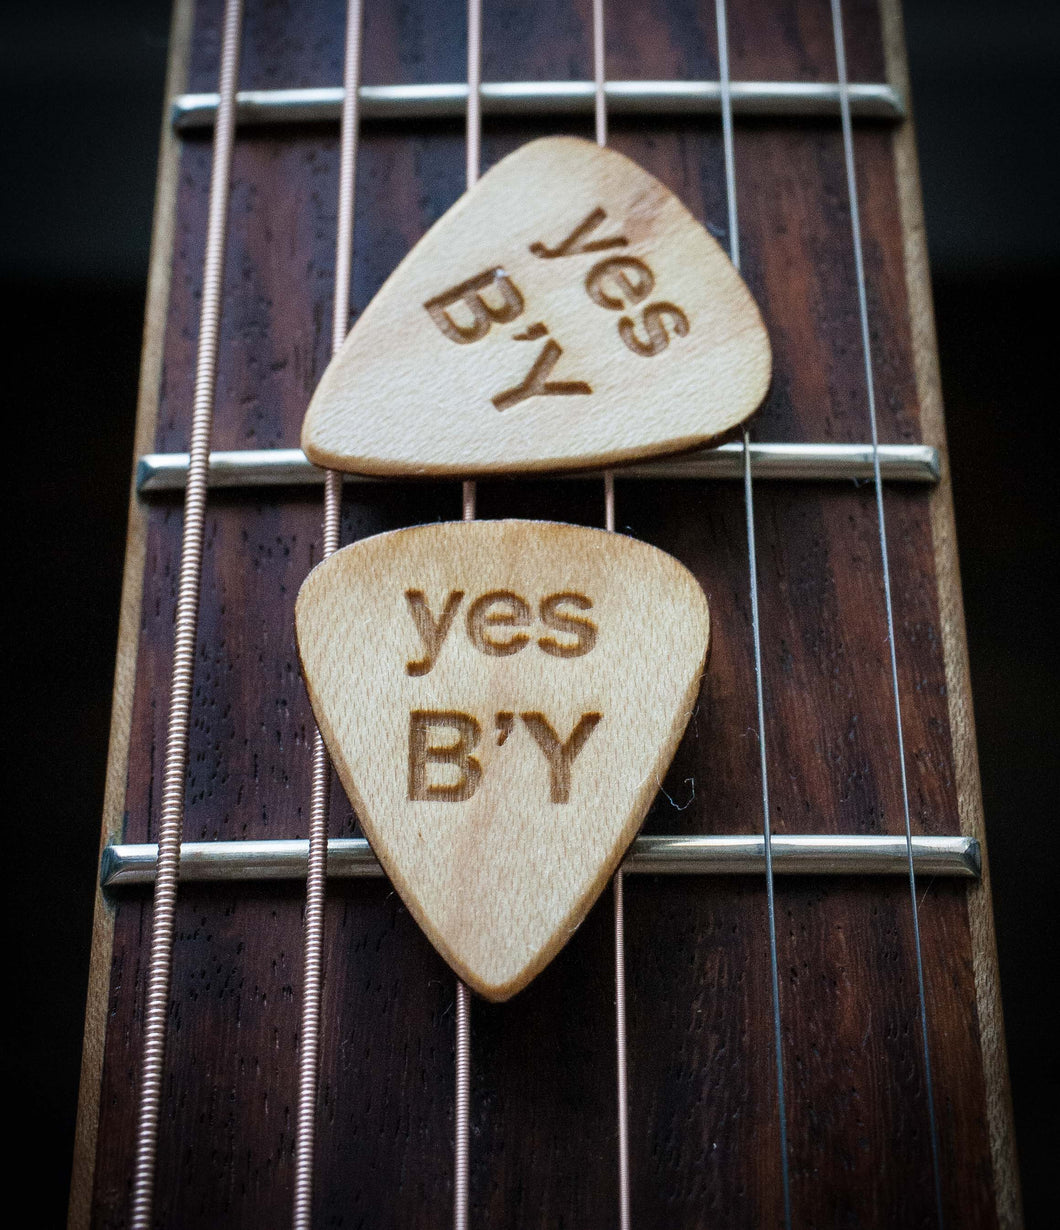 YES B'Y Guitar Picks (5 picks)